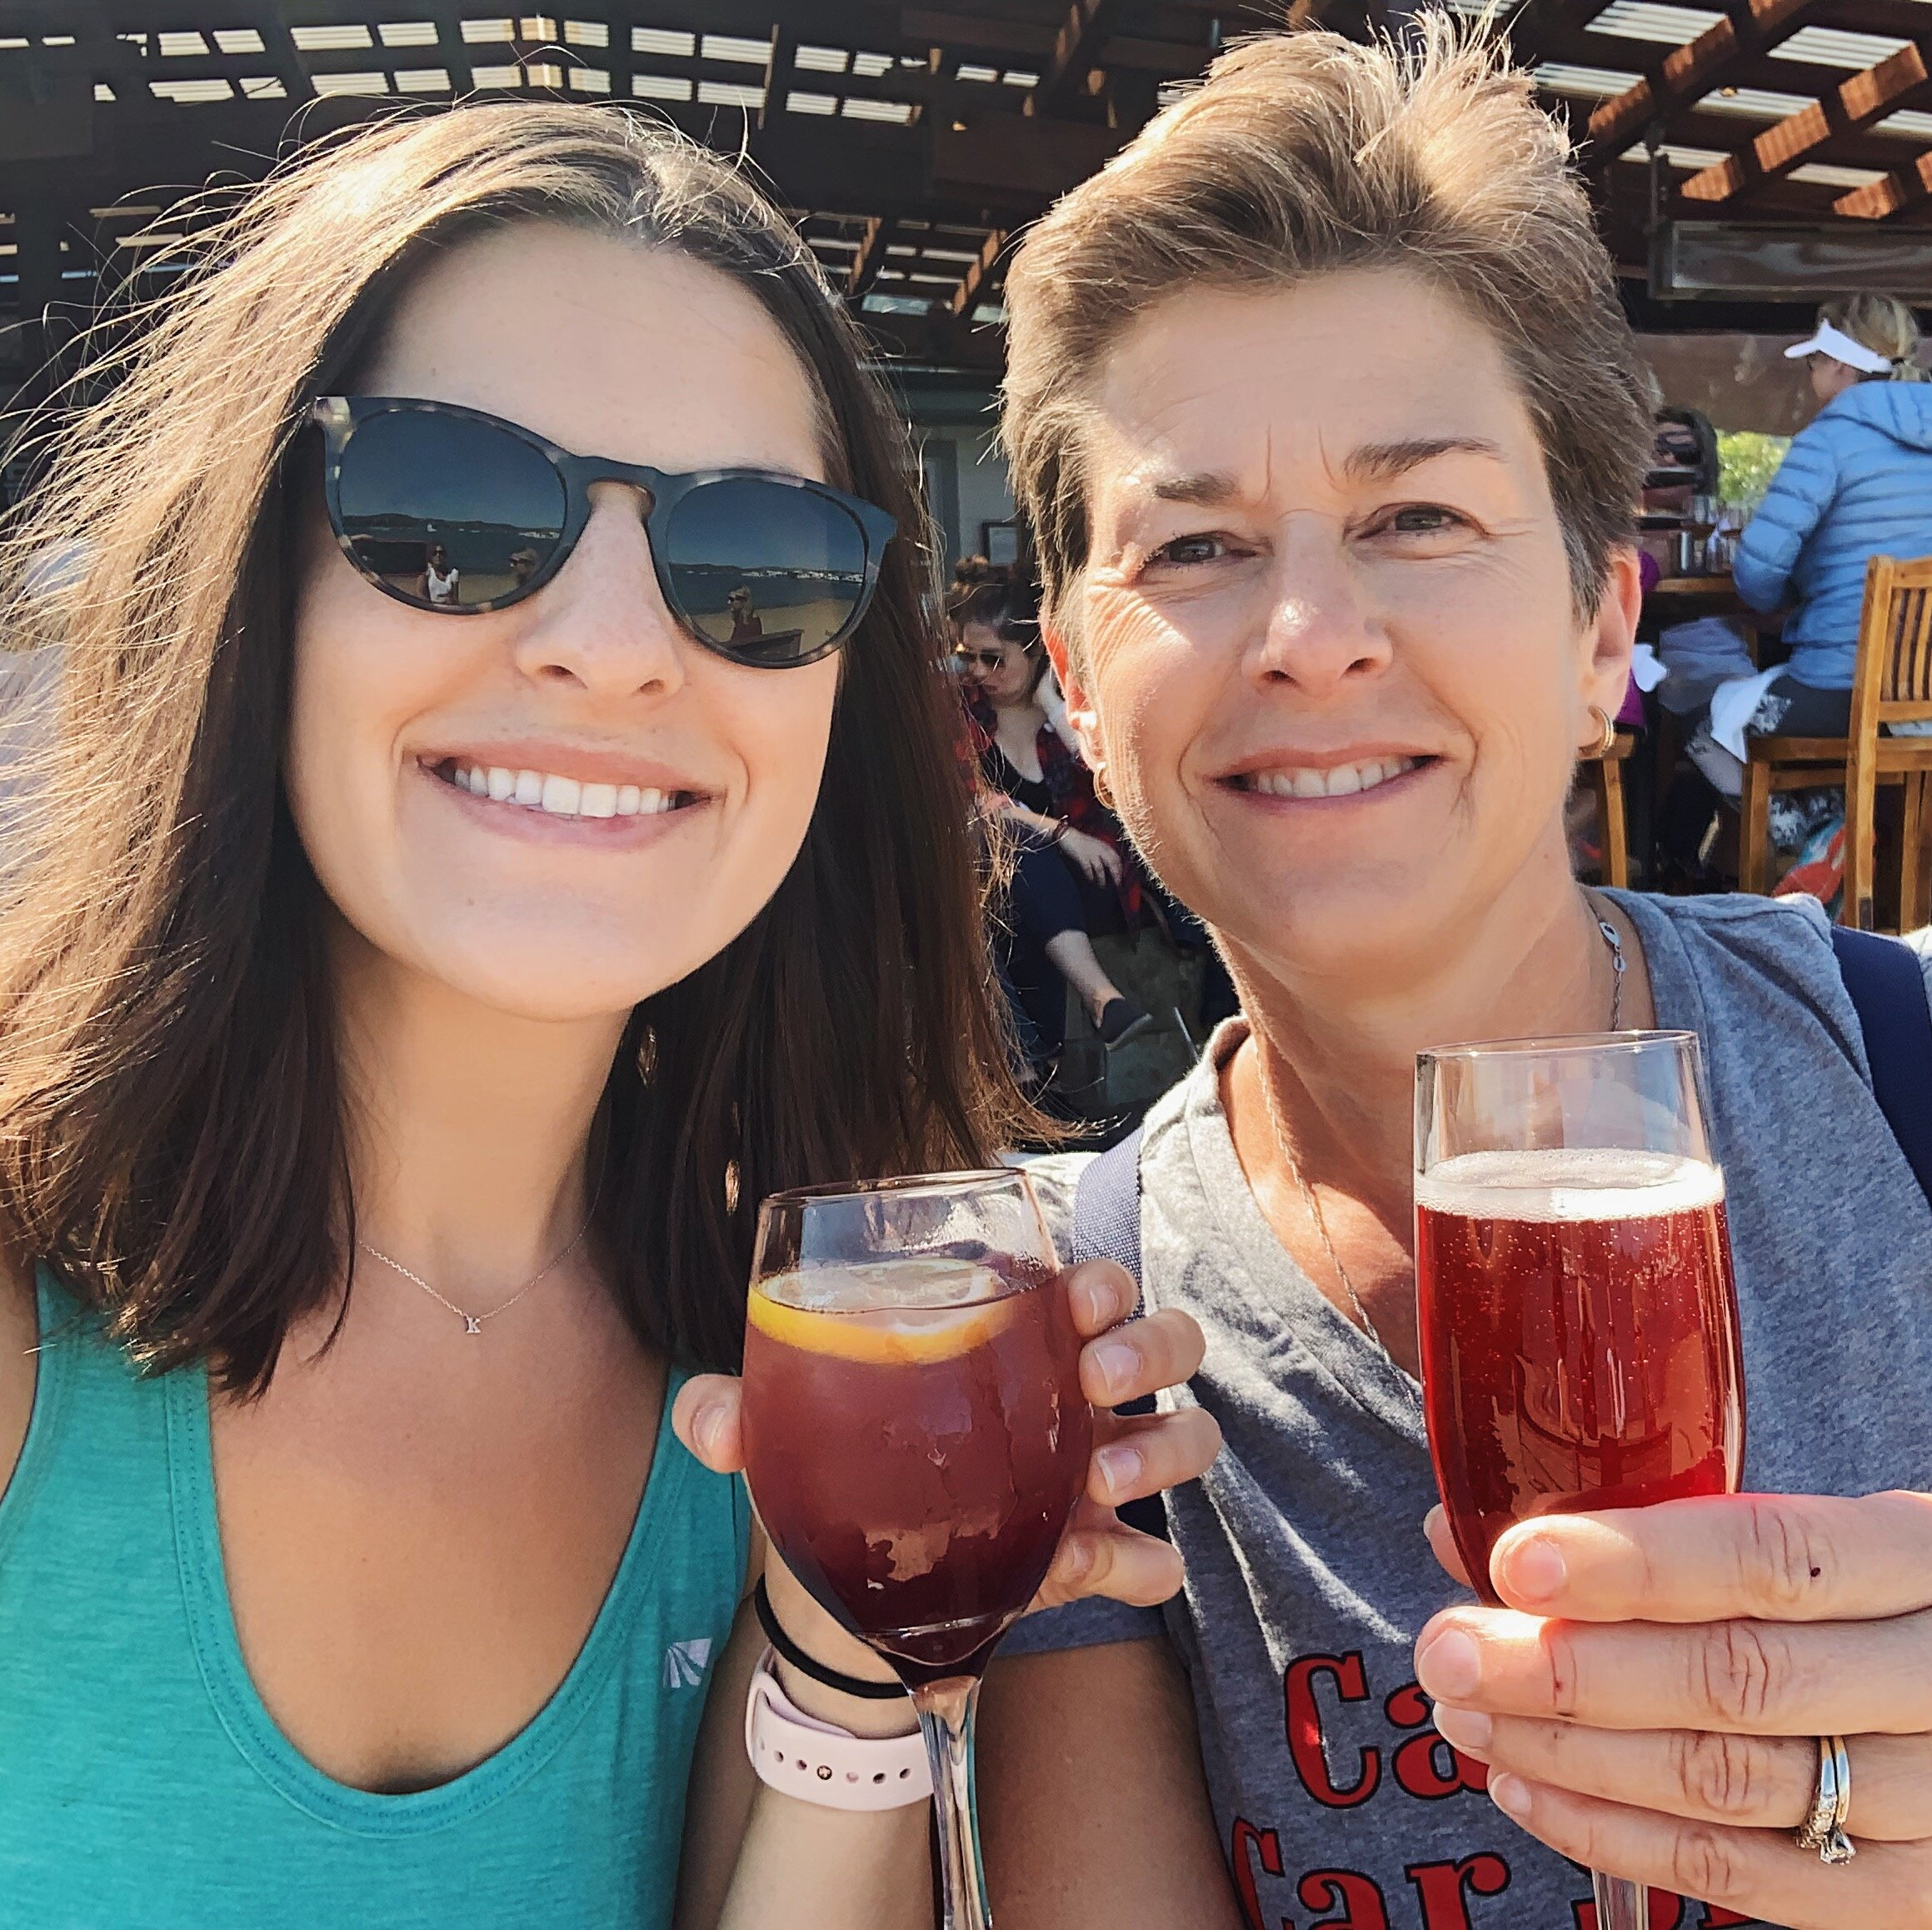 Mom and I sharing drinks on the beach after biking the Golden Gate to Sausalito.